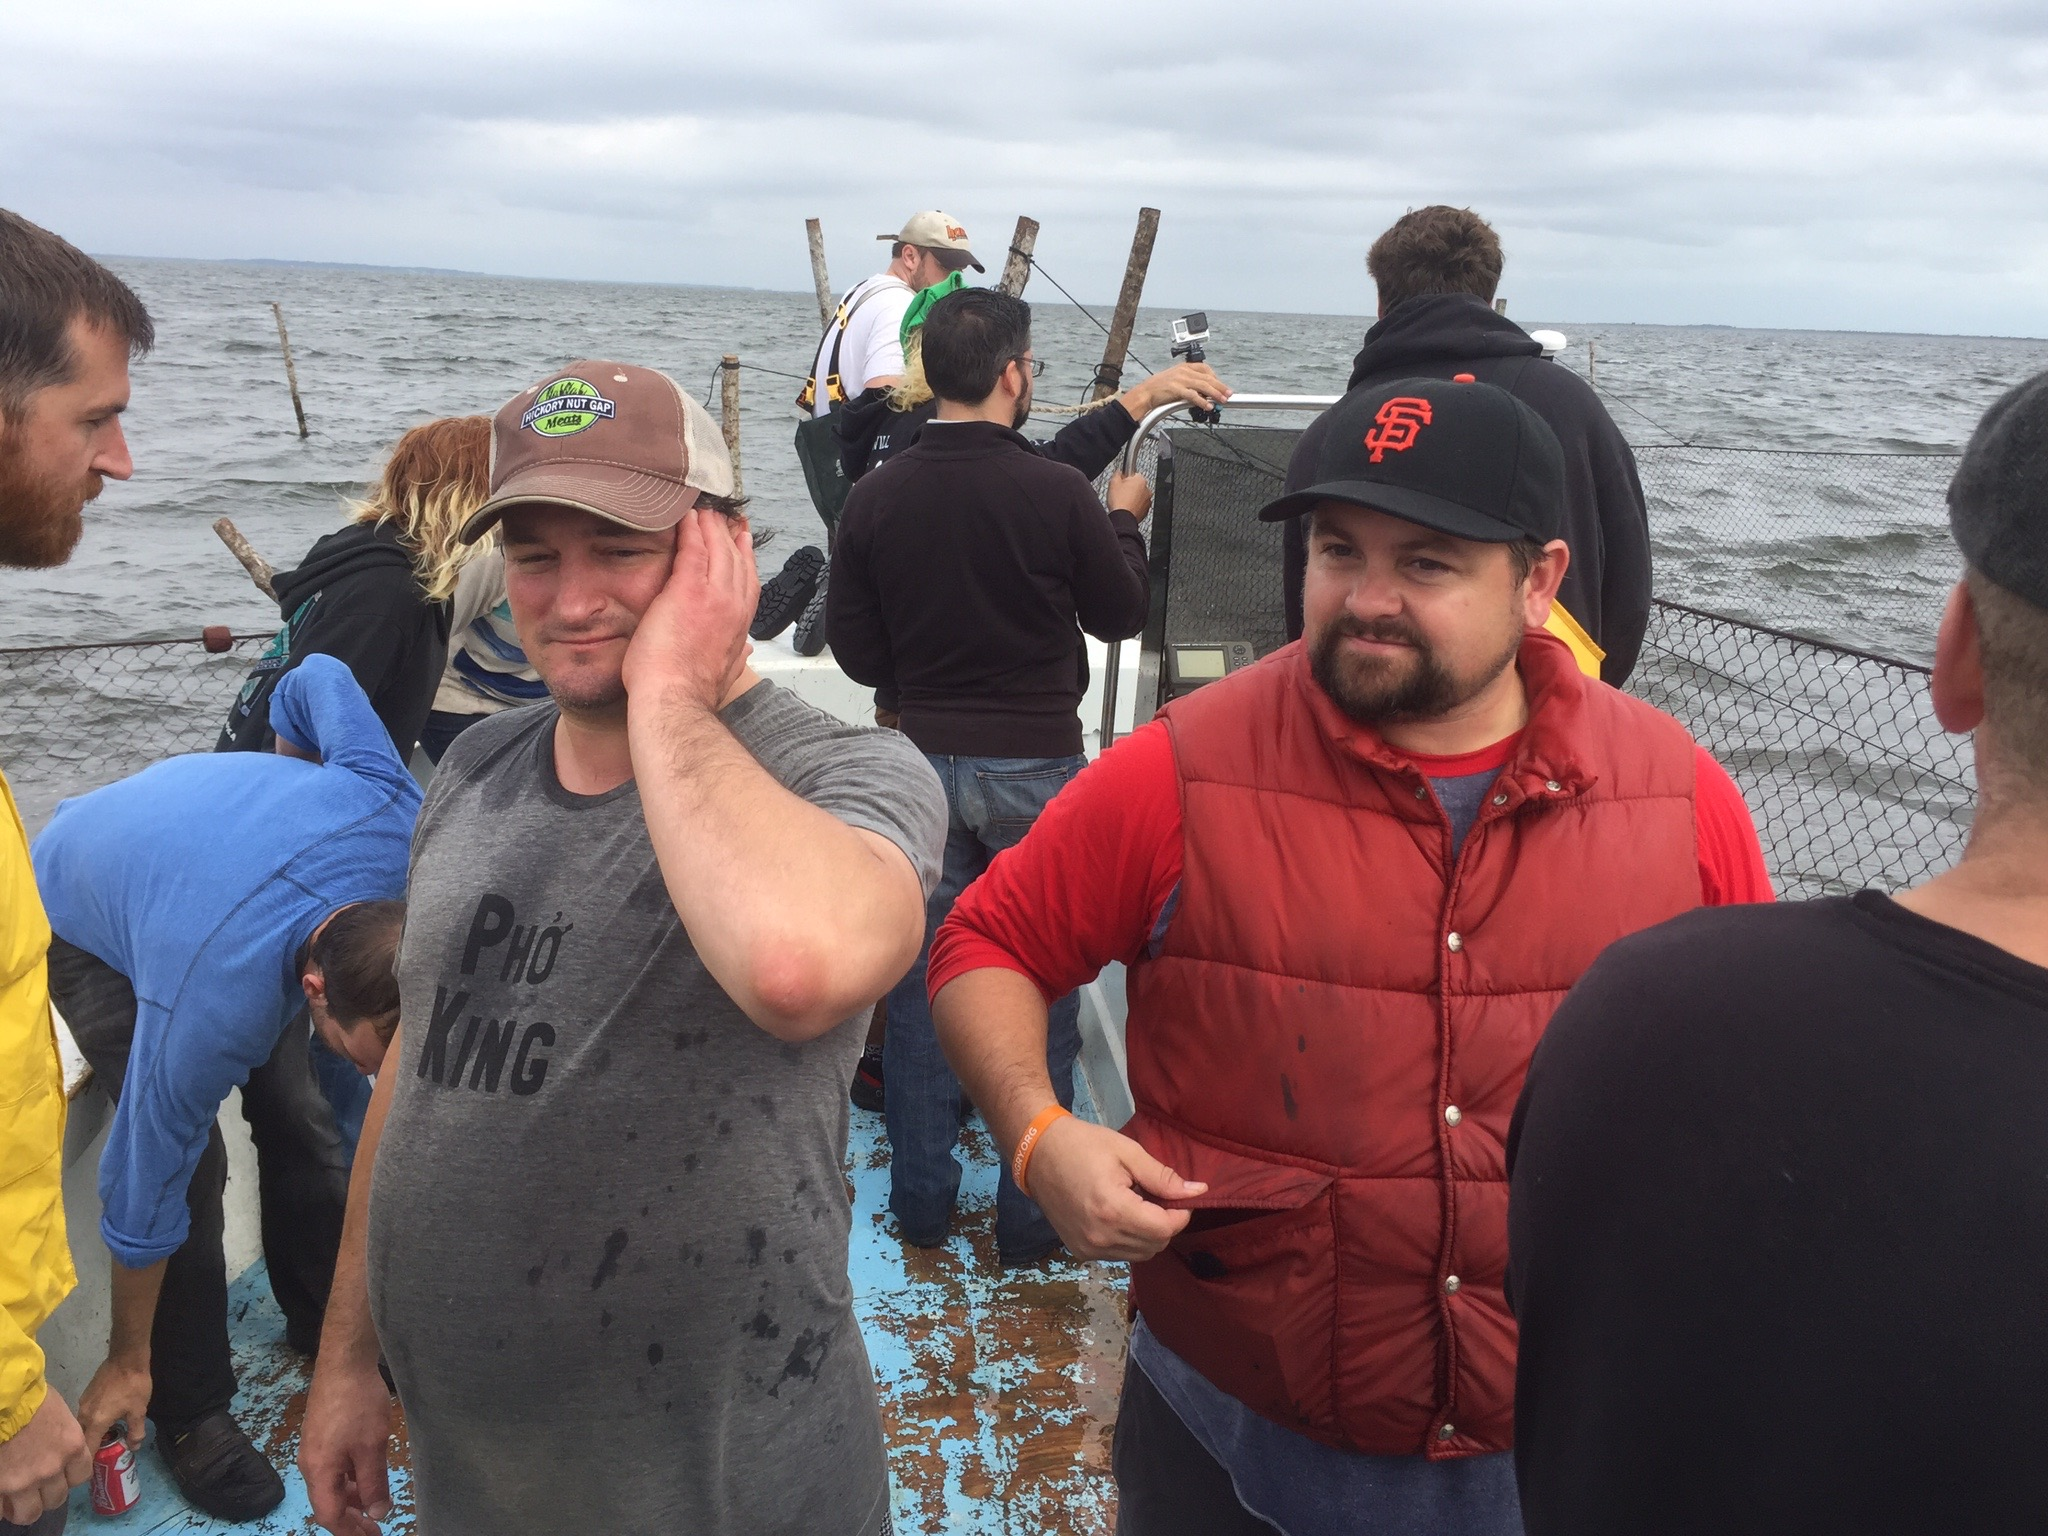 Josh armbruster and mike moore, out at sea, harkers island, nc